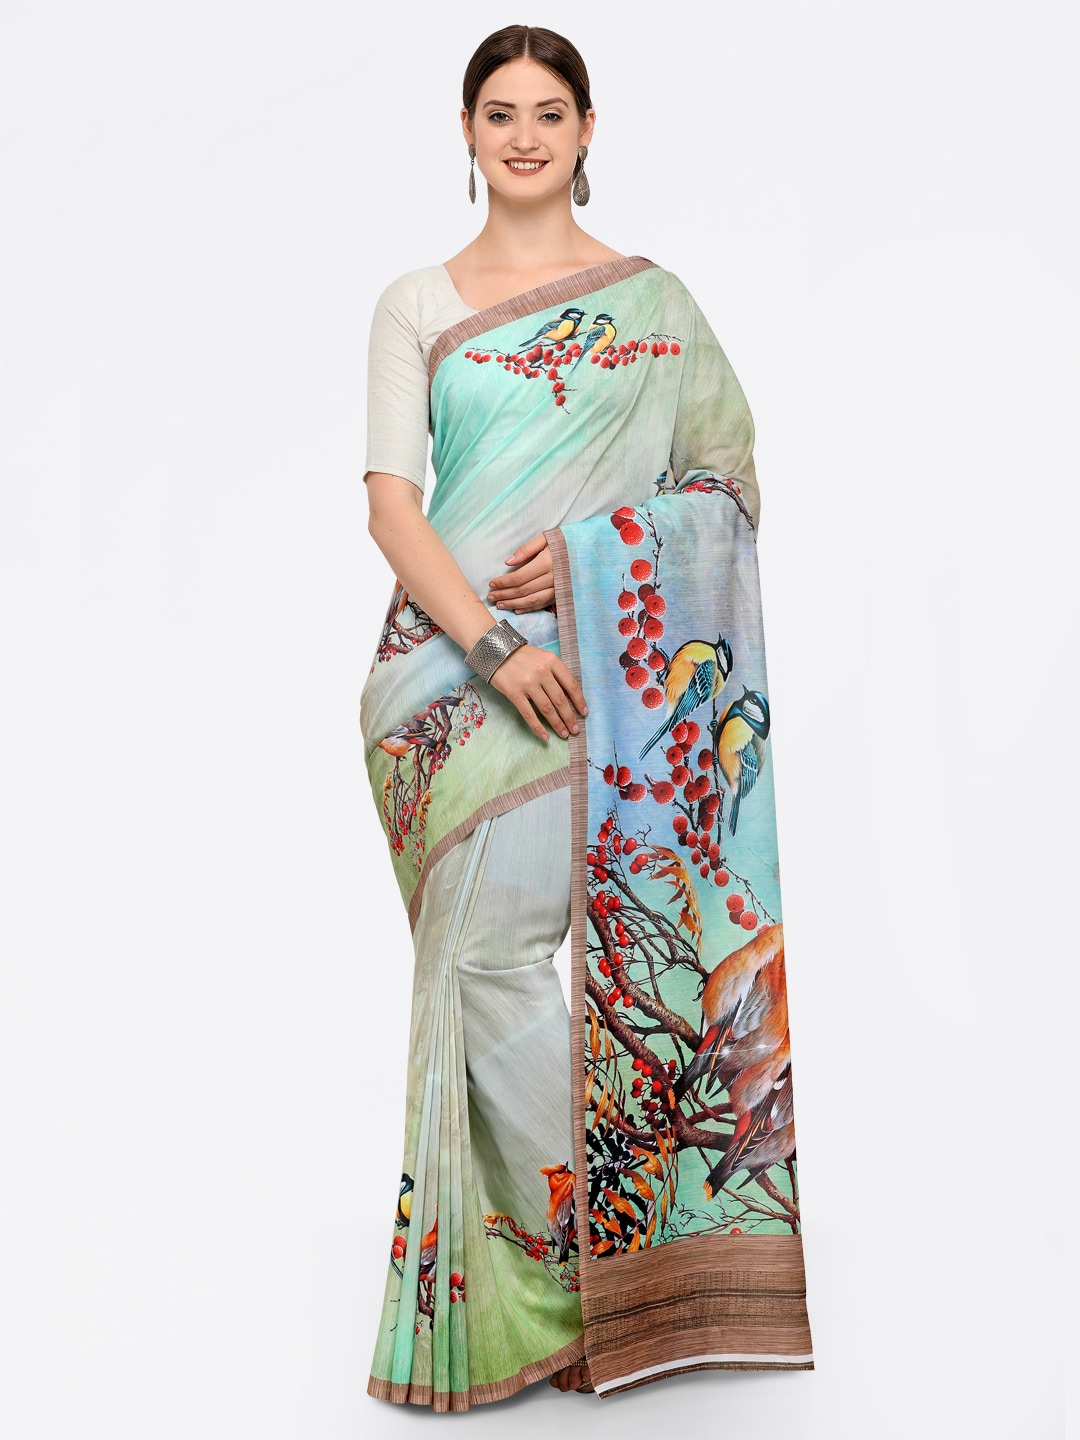 3301ba3d002755 Floral Sarees - Buy Floral Print Saree Online at Best Price